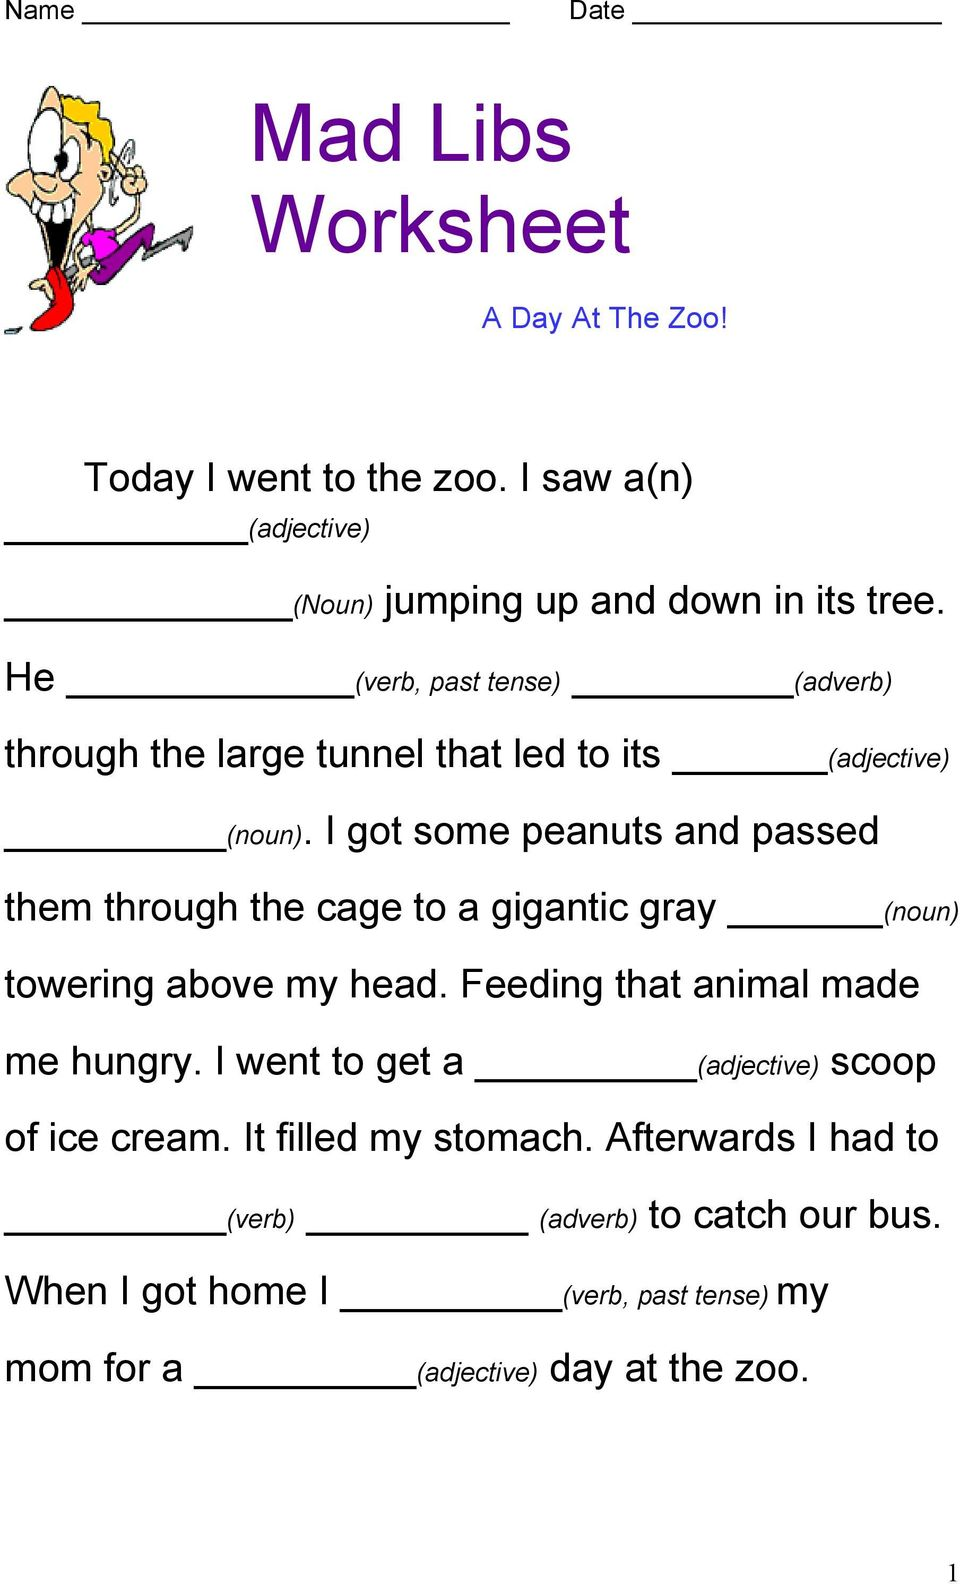 Mad Libs Worksheet  Today I went to the zoo  I saw a(n) He